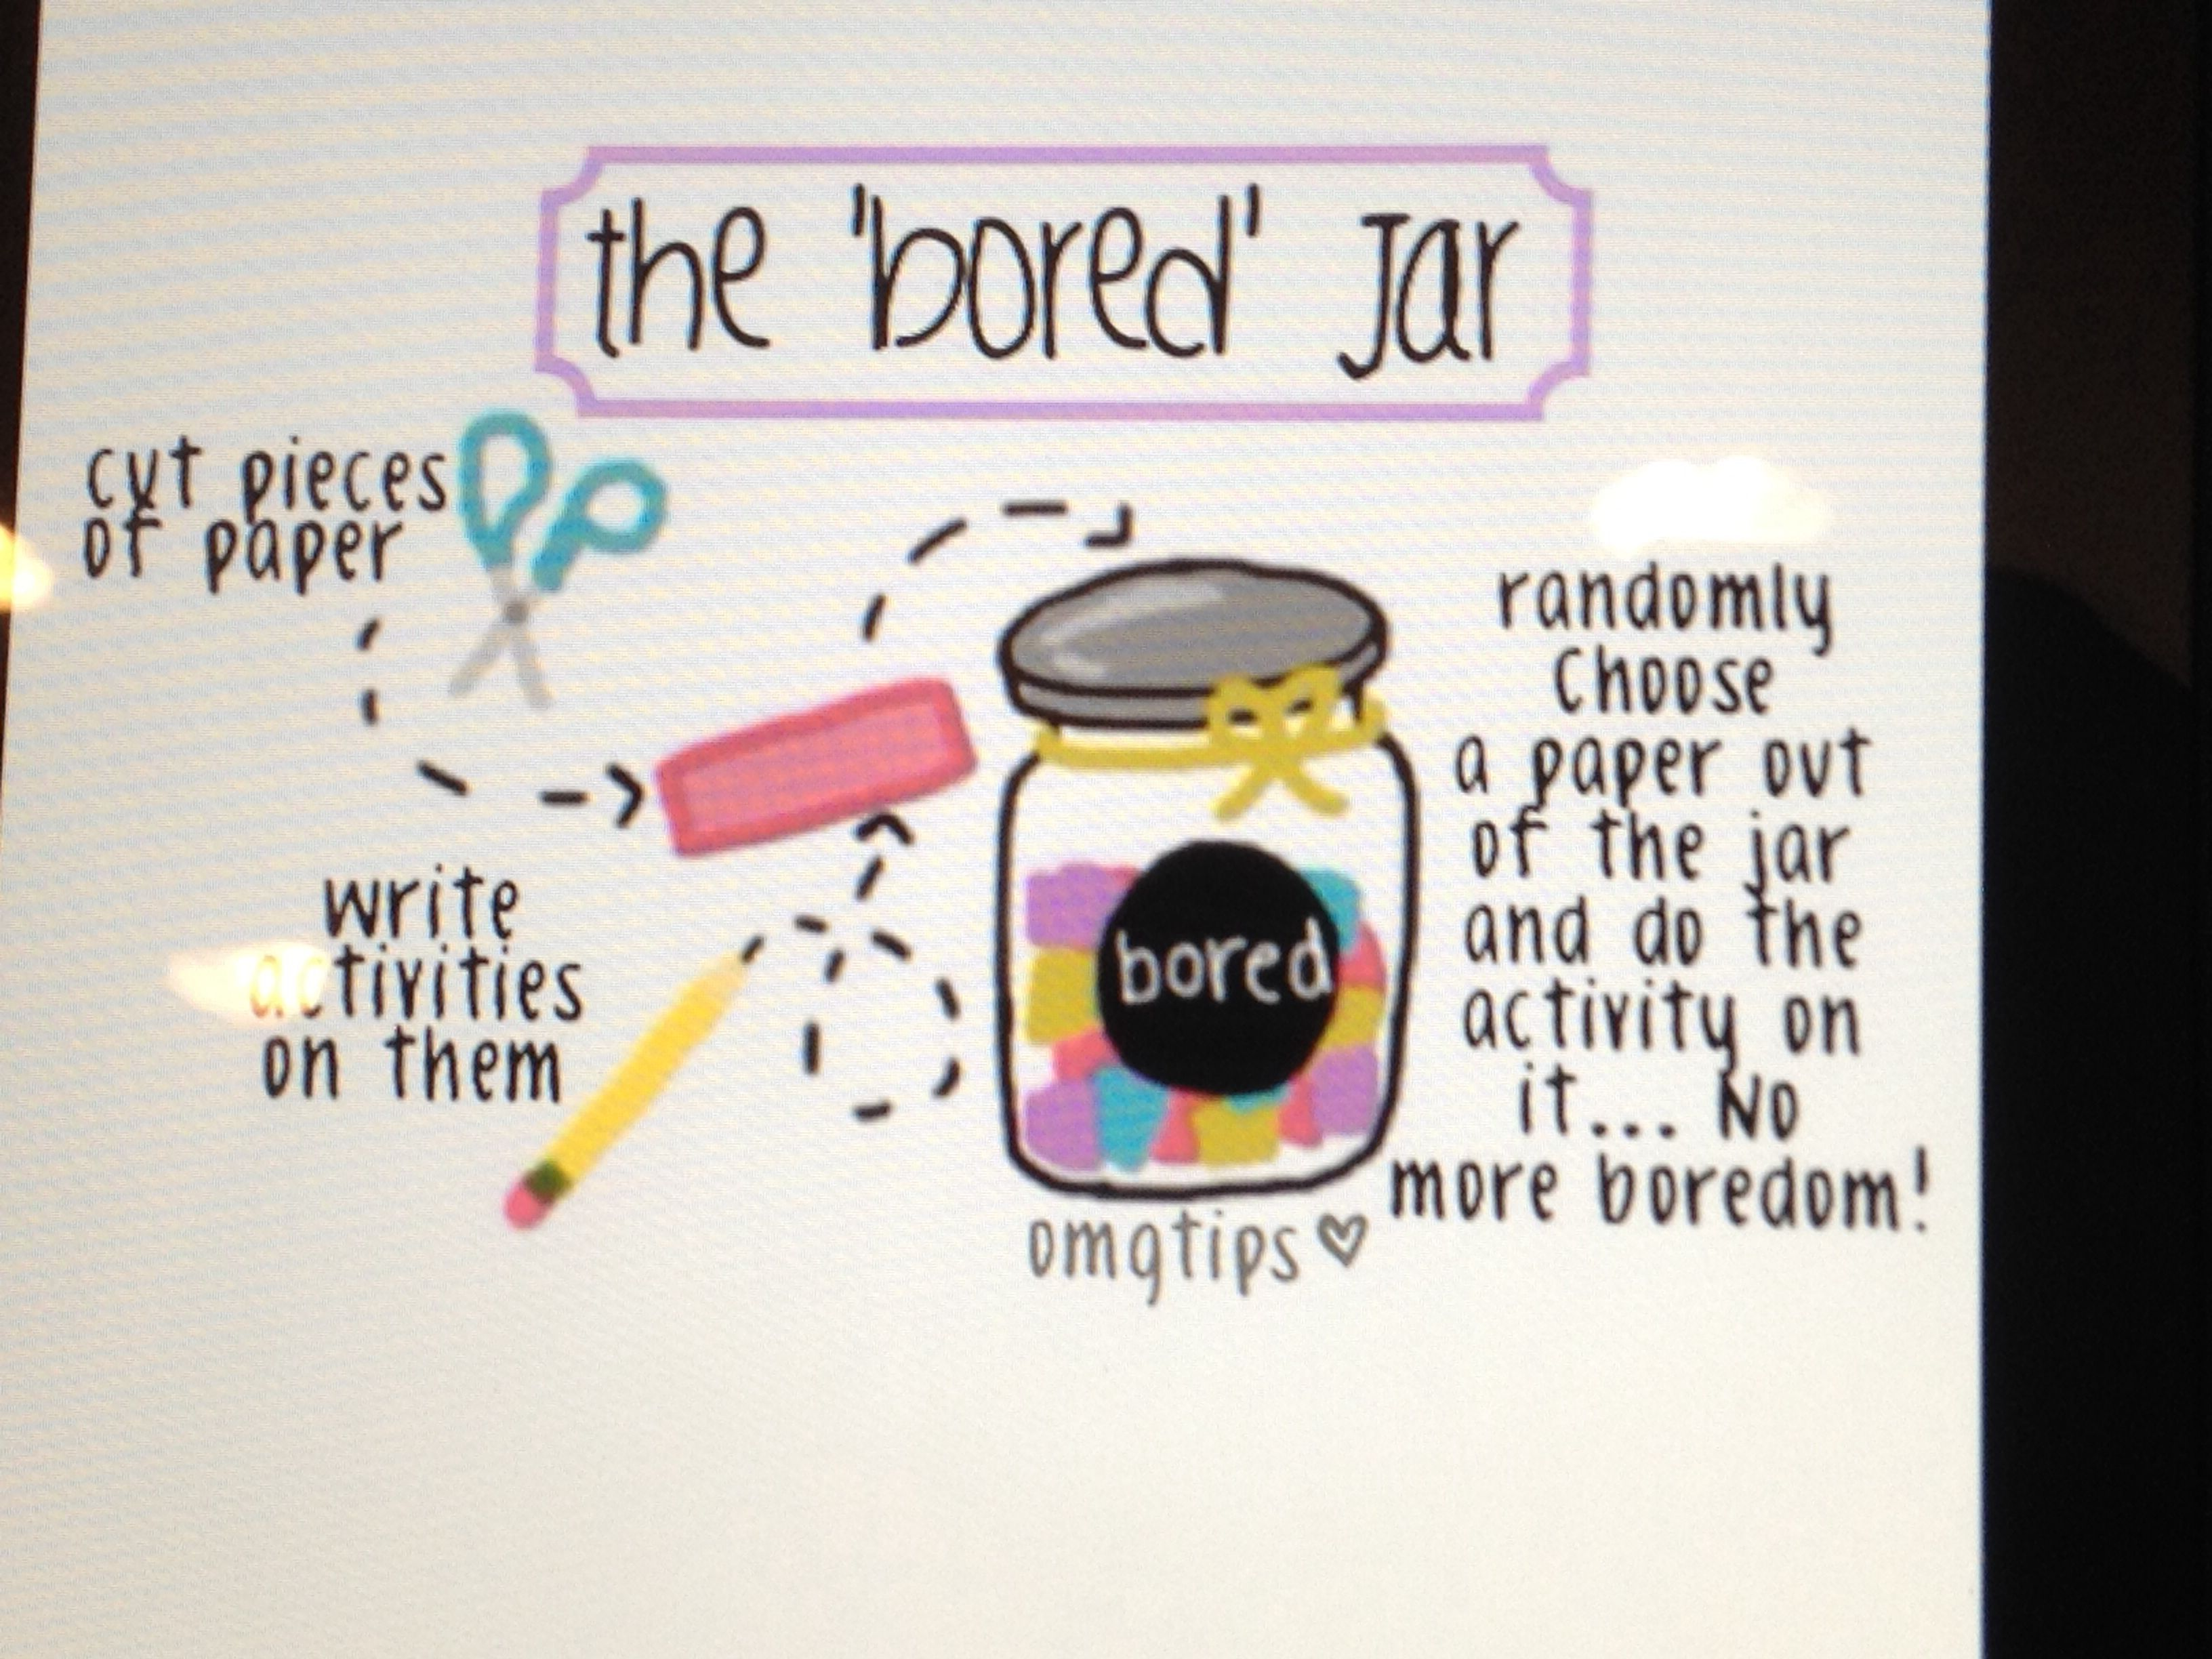 What to do when your bored! Bored jar, What to do when